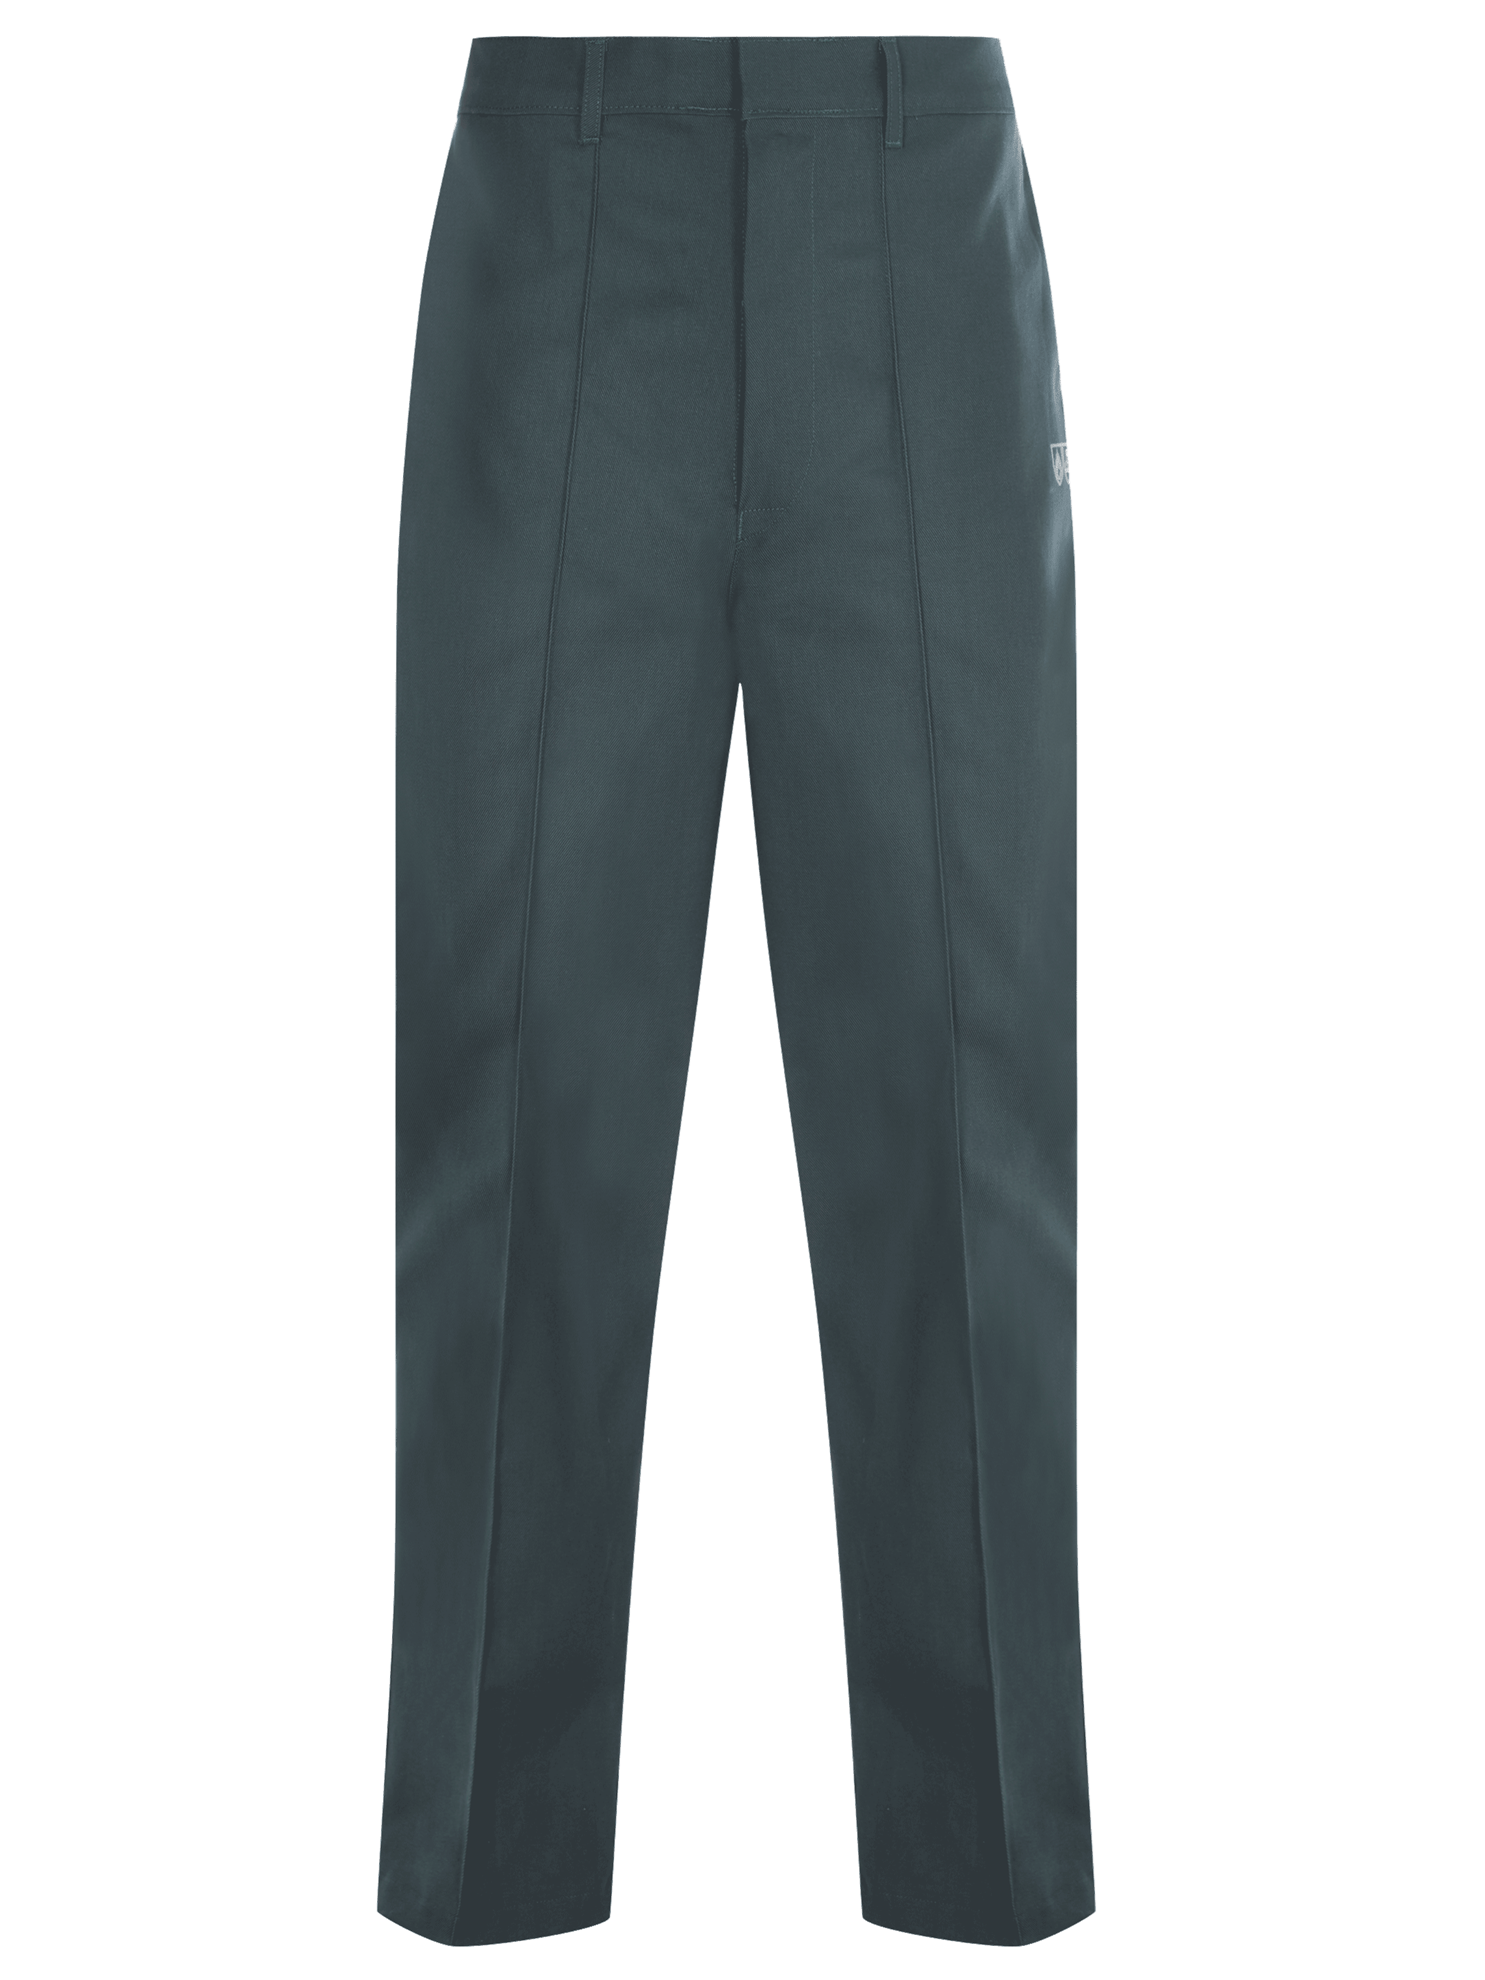 Picture of Trouser made with Zeus FR - Spruce Green